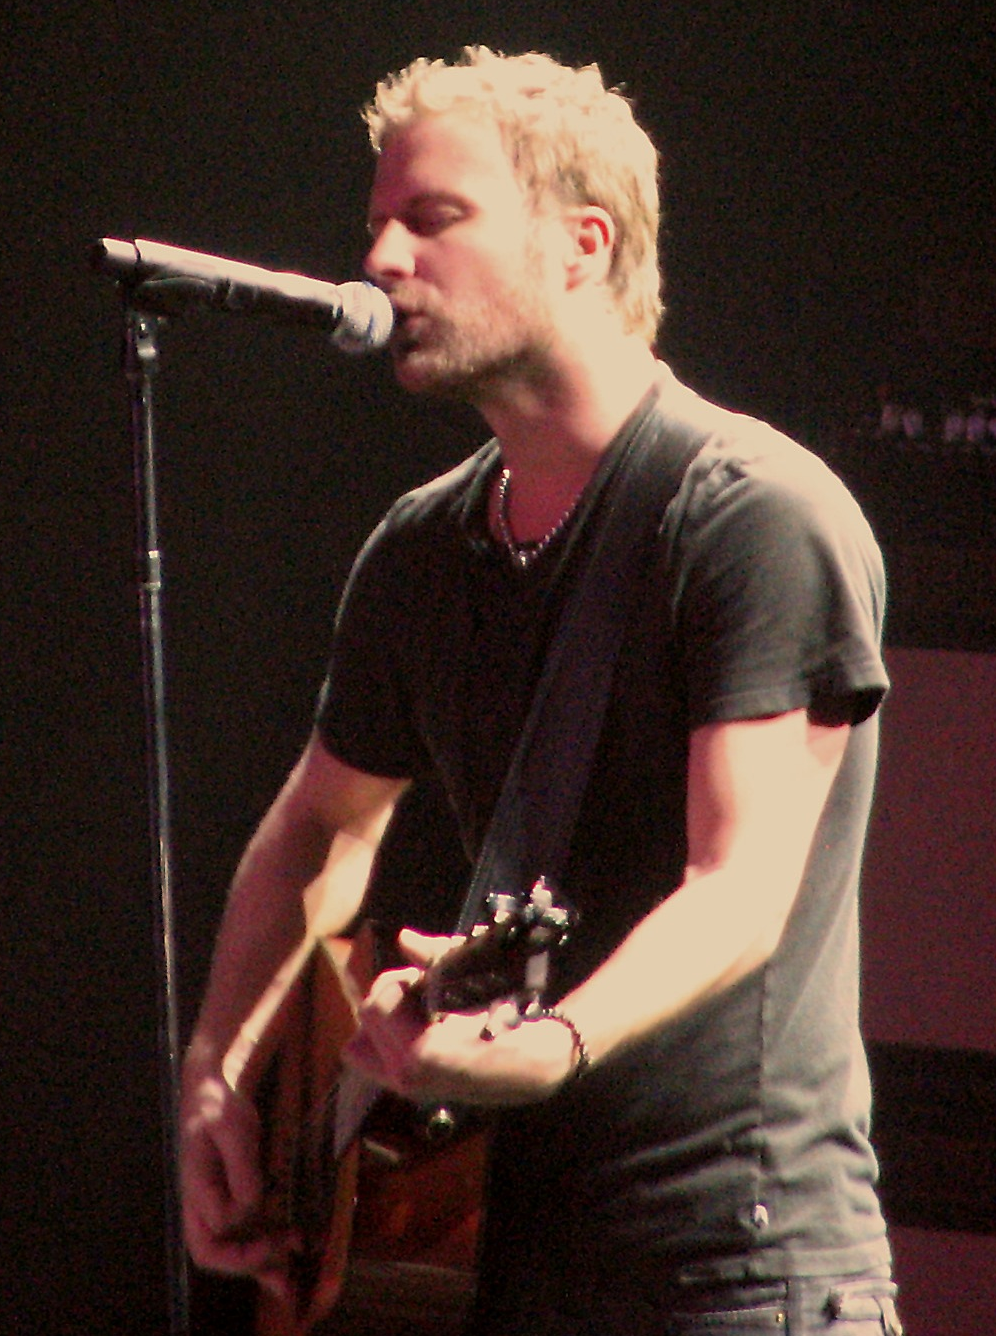 dierks bentley pictures metrolyrics. Cars Review. Best American Auto & Cars Review